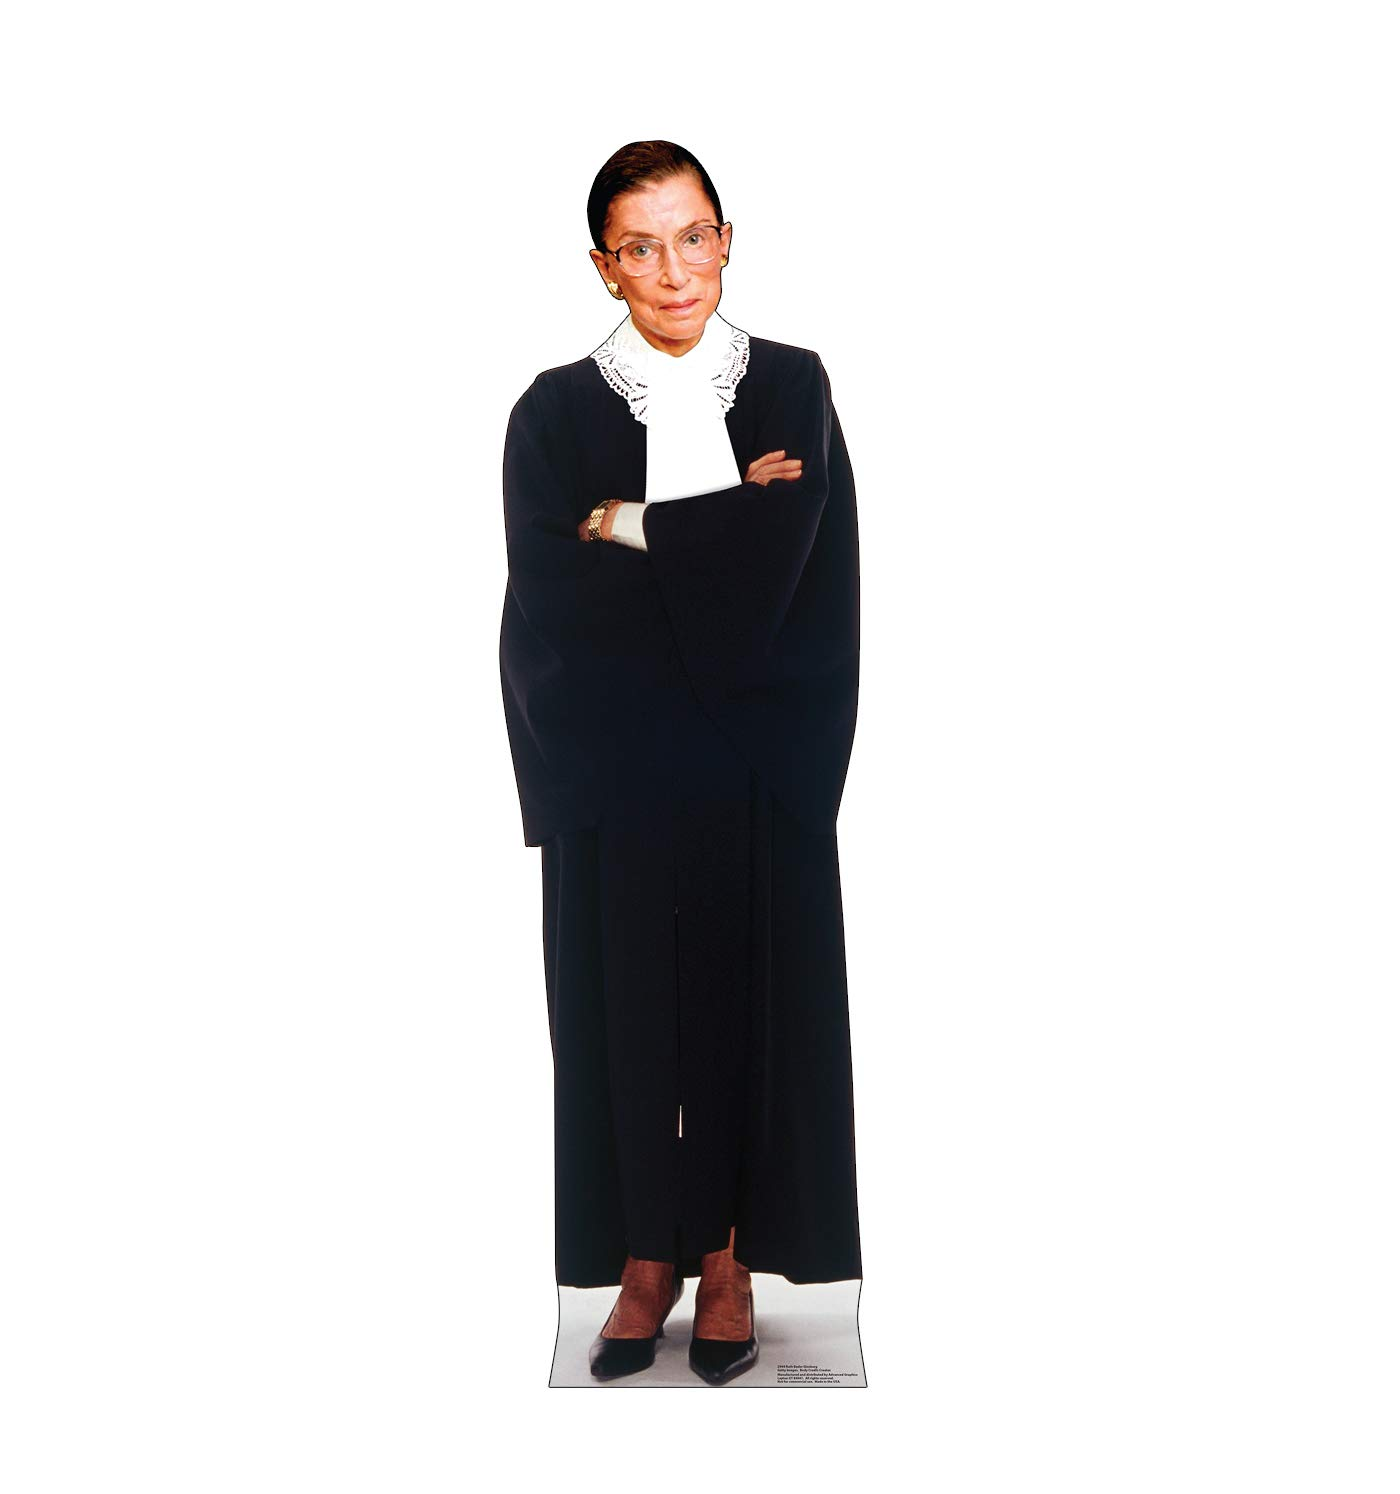 Advanced Graphics Ruth Bader Ginsburg Life Size Cardboard Cutout Standup by Cardboard People